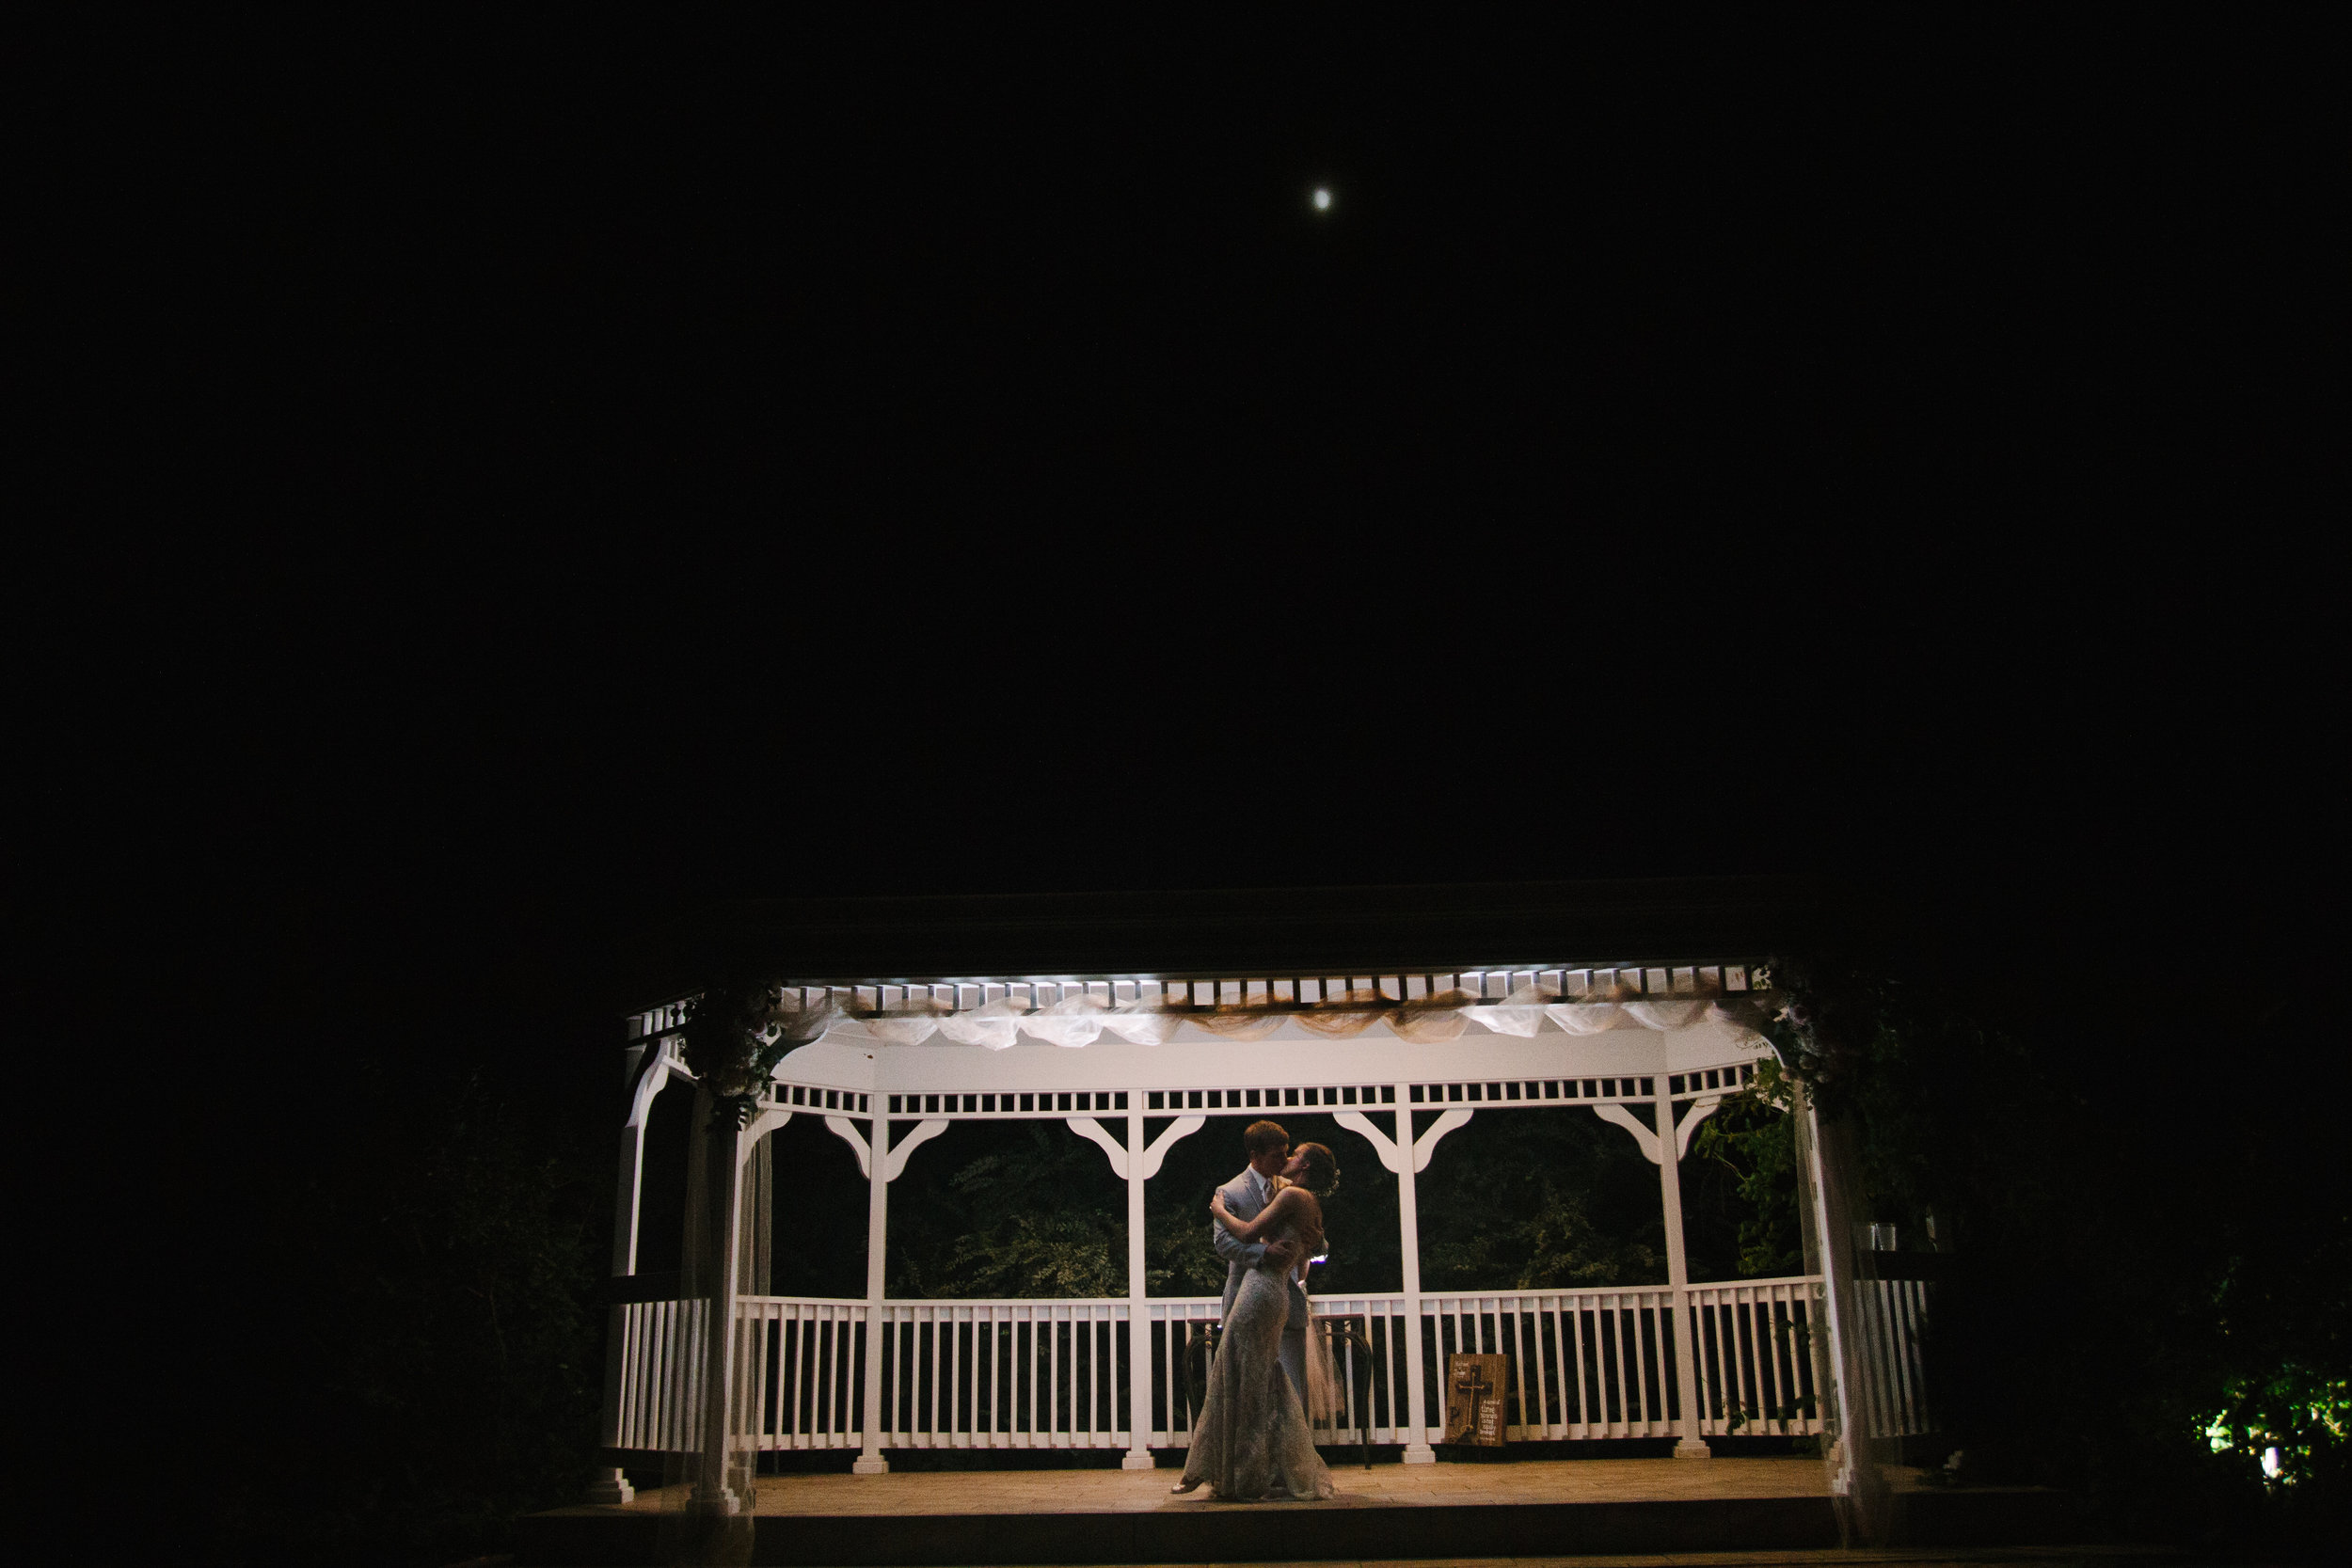 Wedding Photography - A Champagne + Blush Oklahoma Wedding - Meditations Event Center - From Britt's Eye View Photography